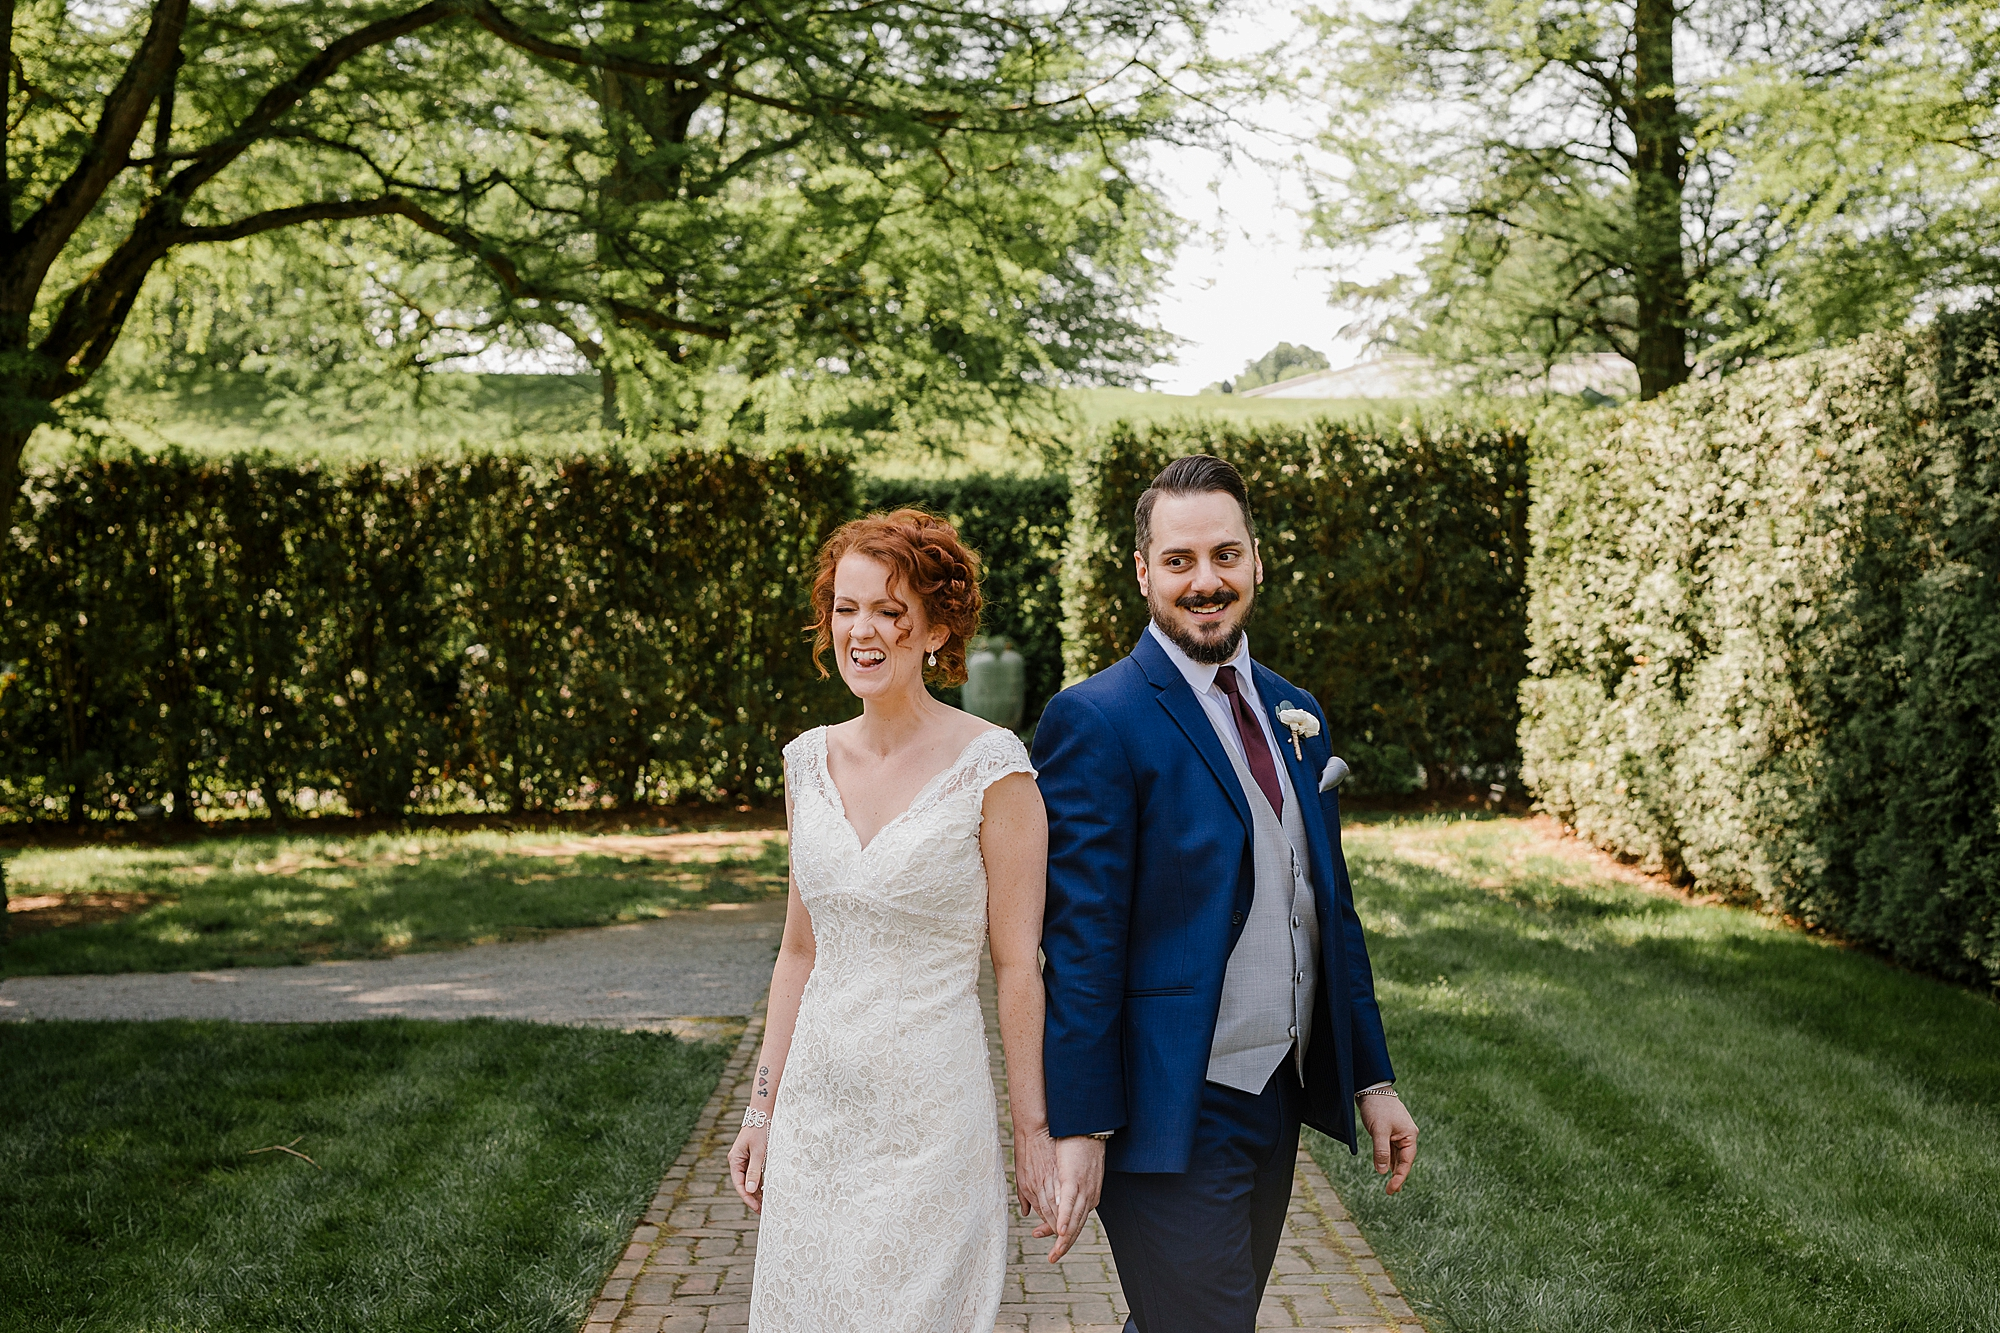 Megan and Daniel_Northbrook_Marketplace_Longwood_Gardens_Chester_County_Unionville_Love_by_Joe_Mac_Wedding_photography__0030.jpg